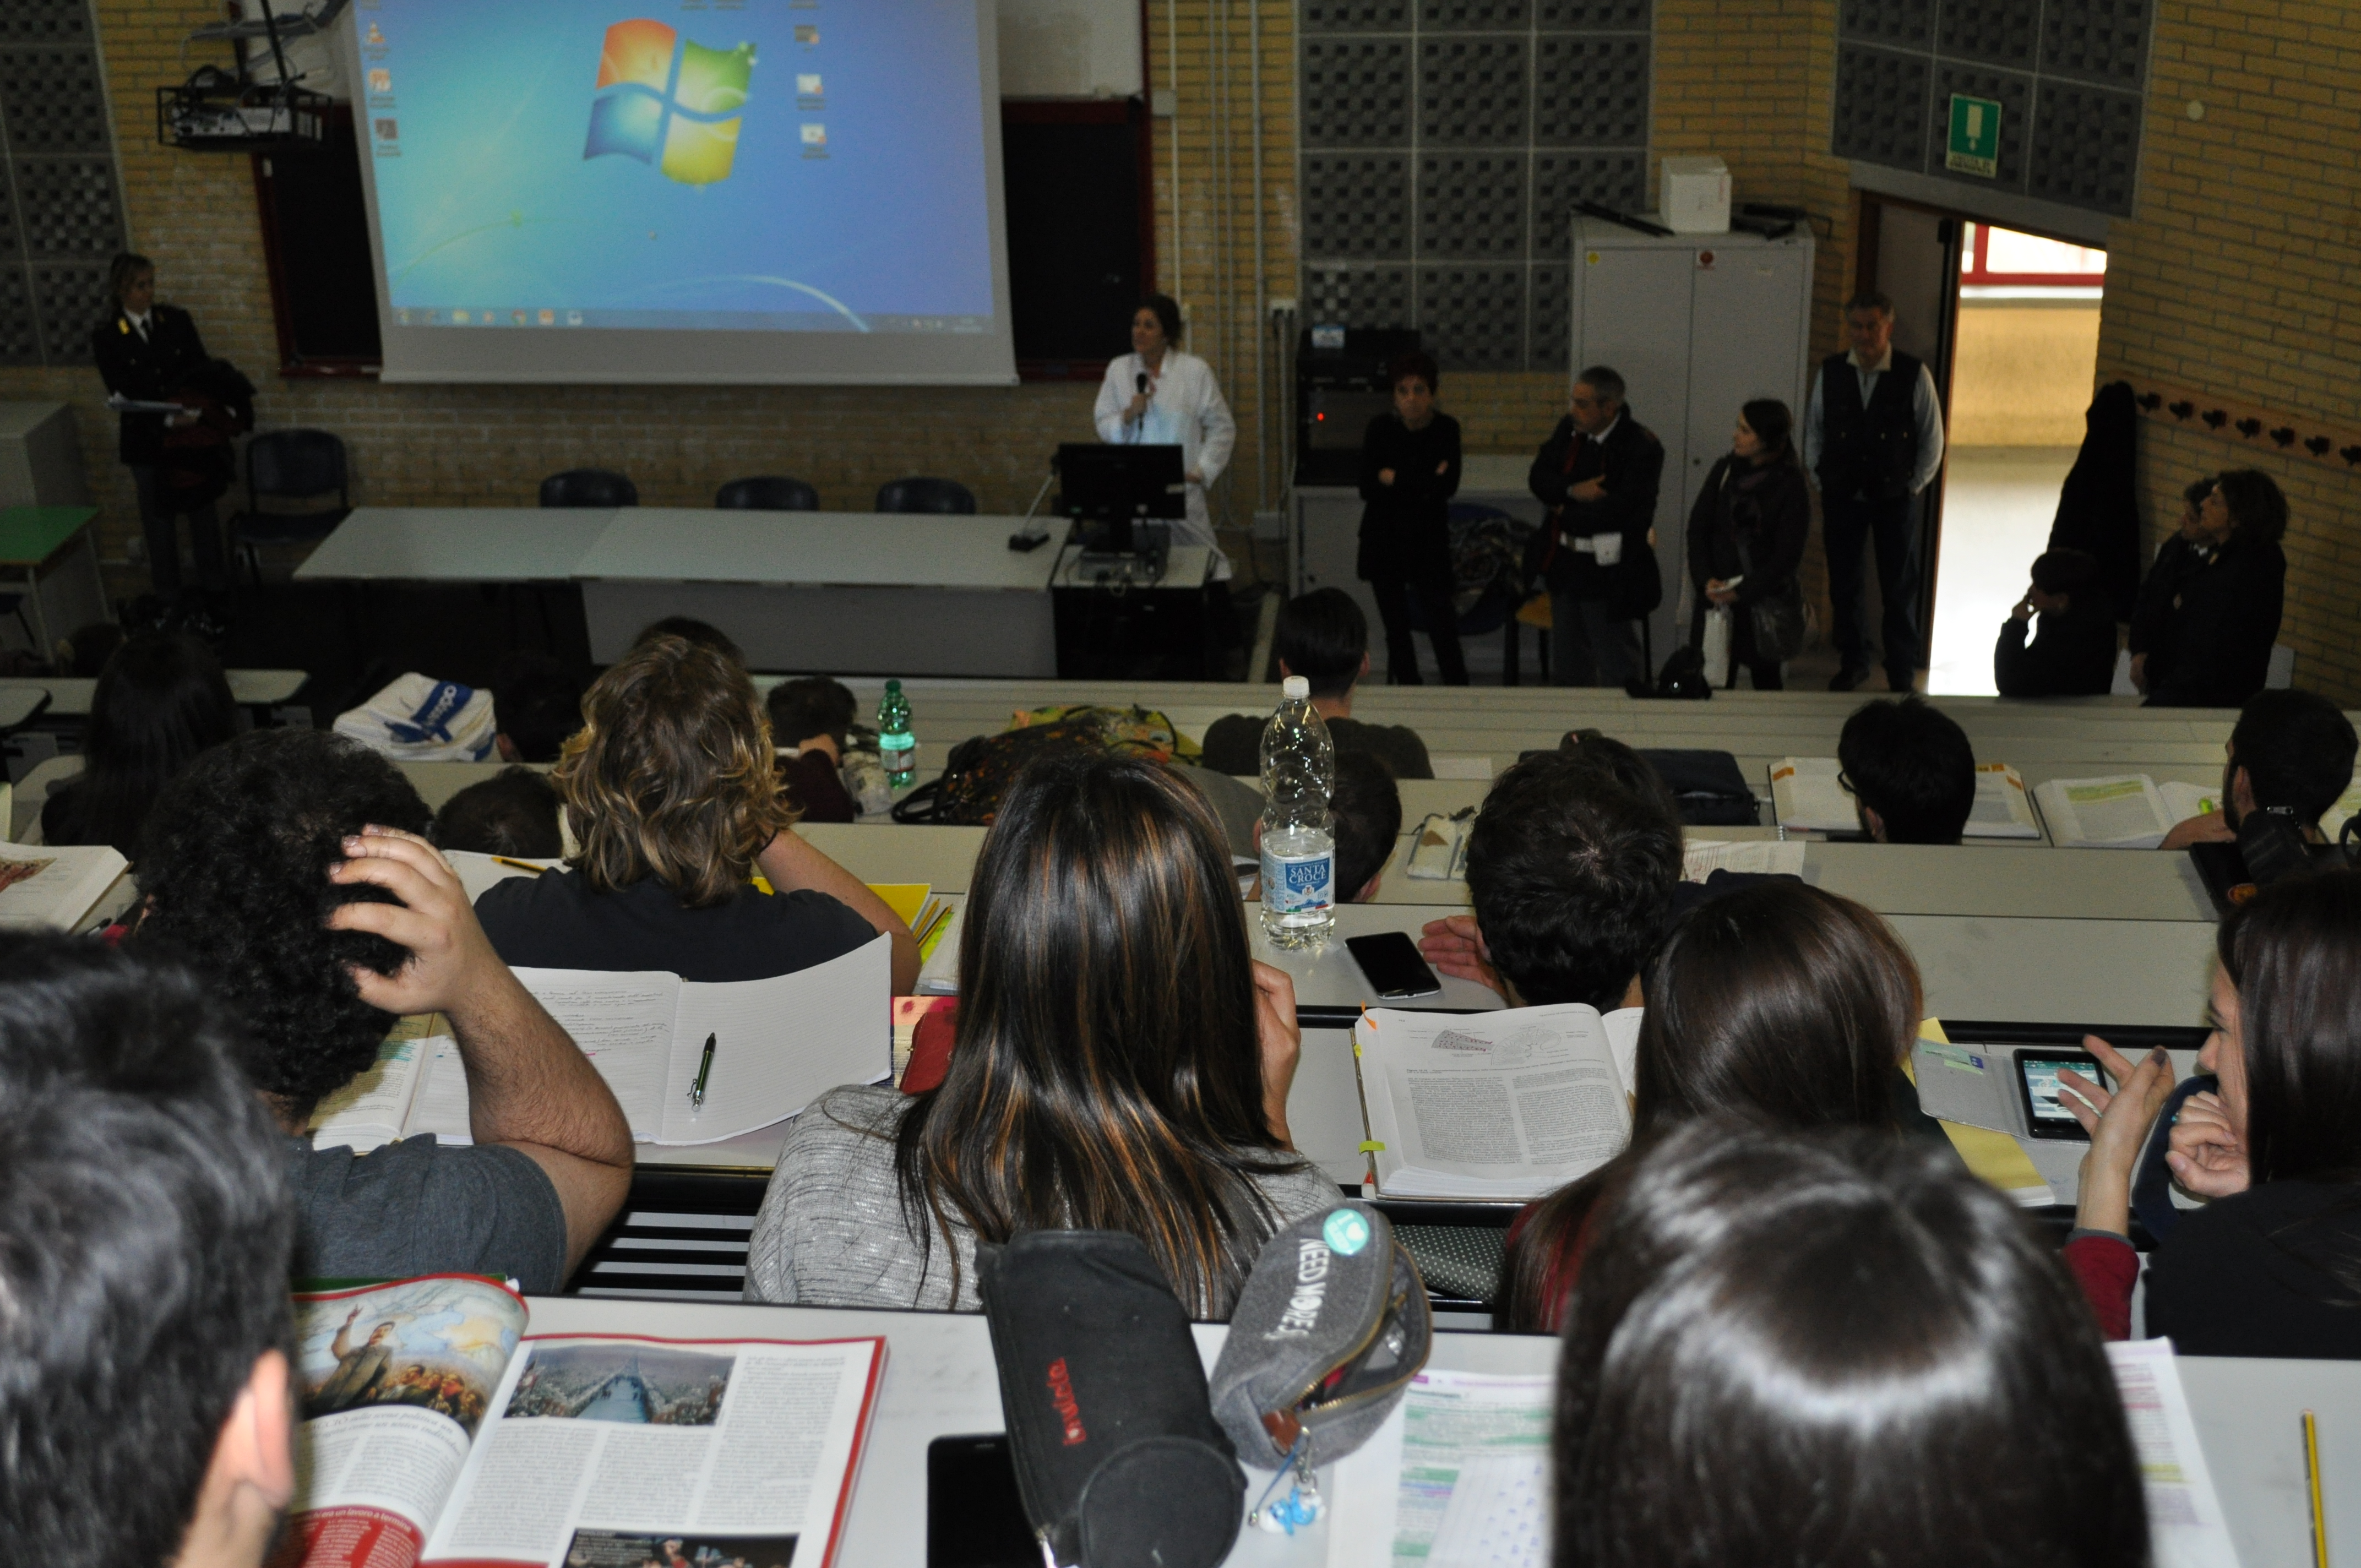 L'Aquila - incontra gli studenti dell'Università